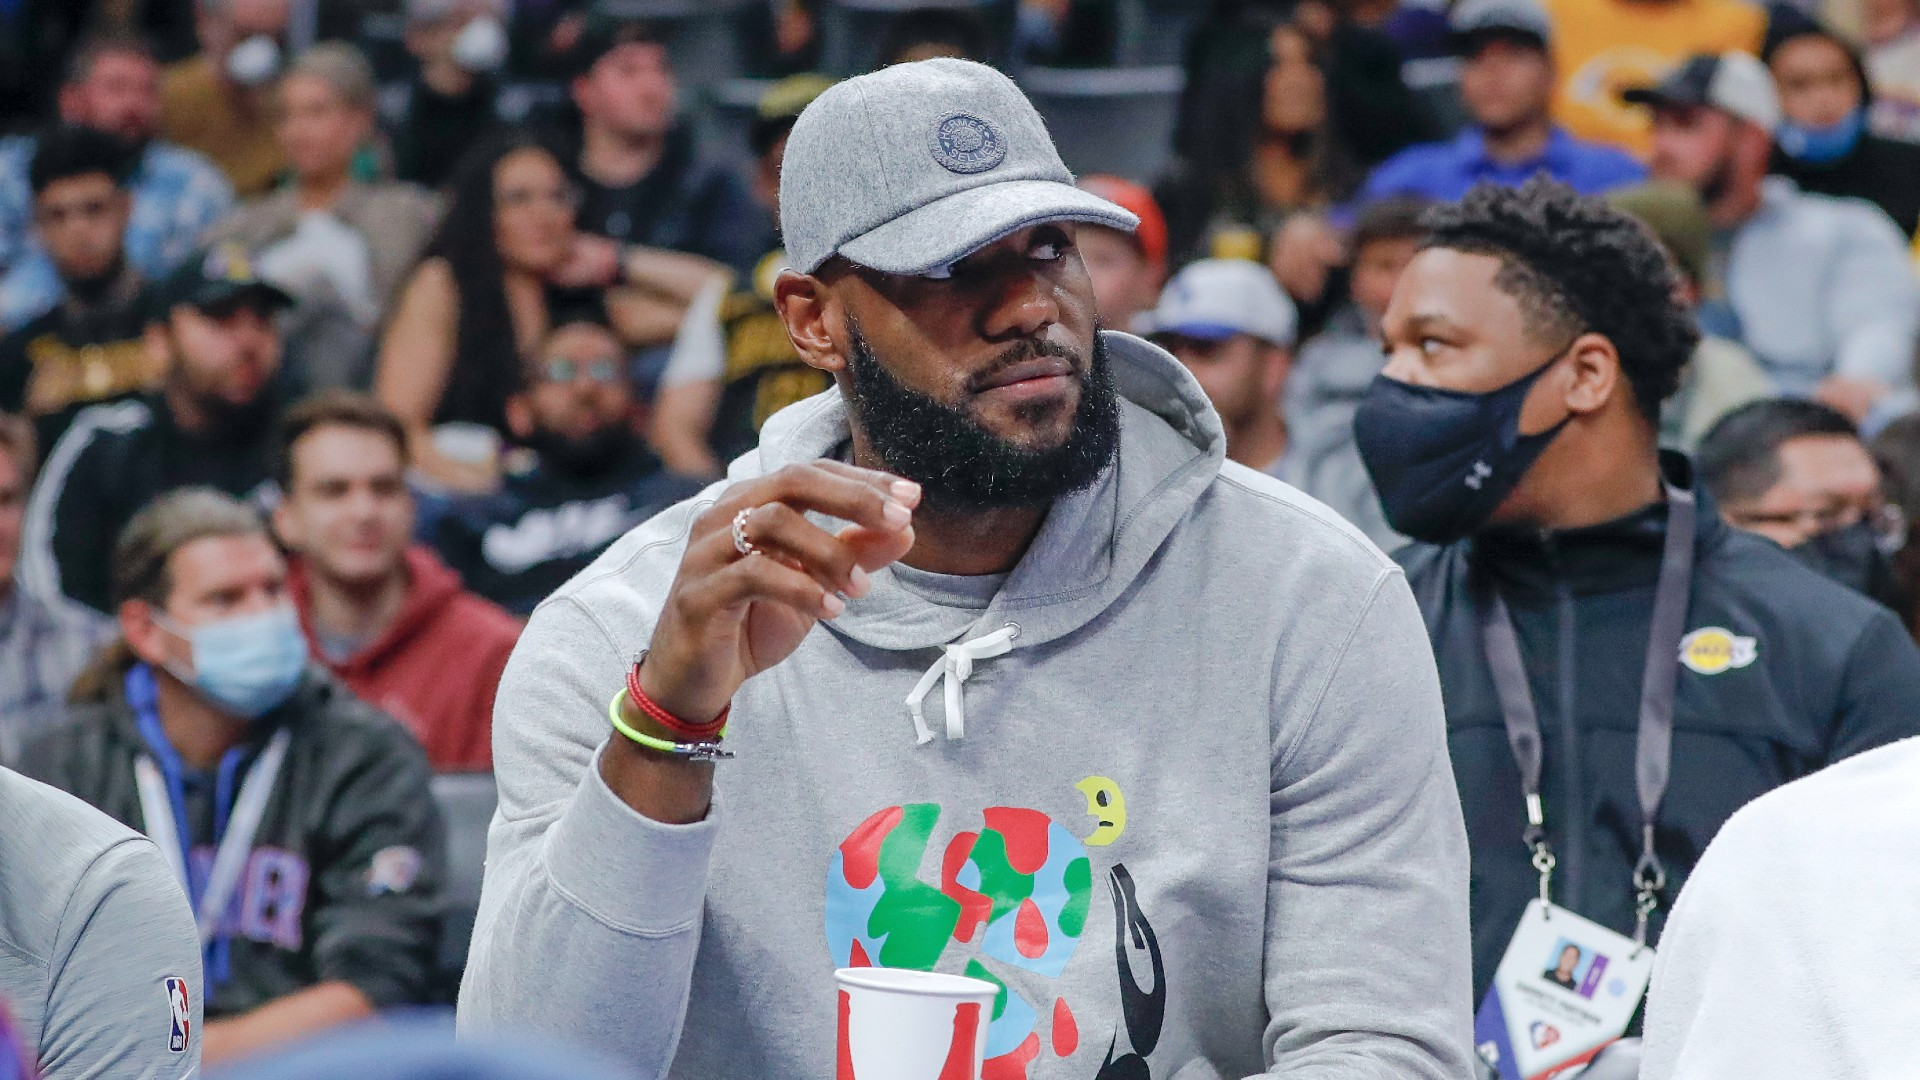 LeBron James misses 2nd consecutive game with sore right ankle